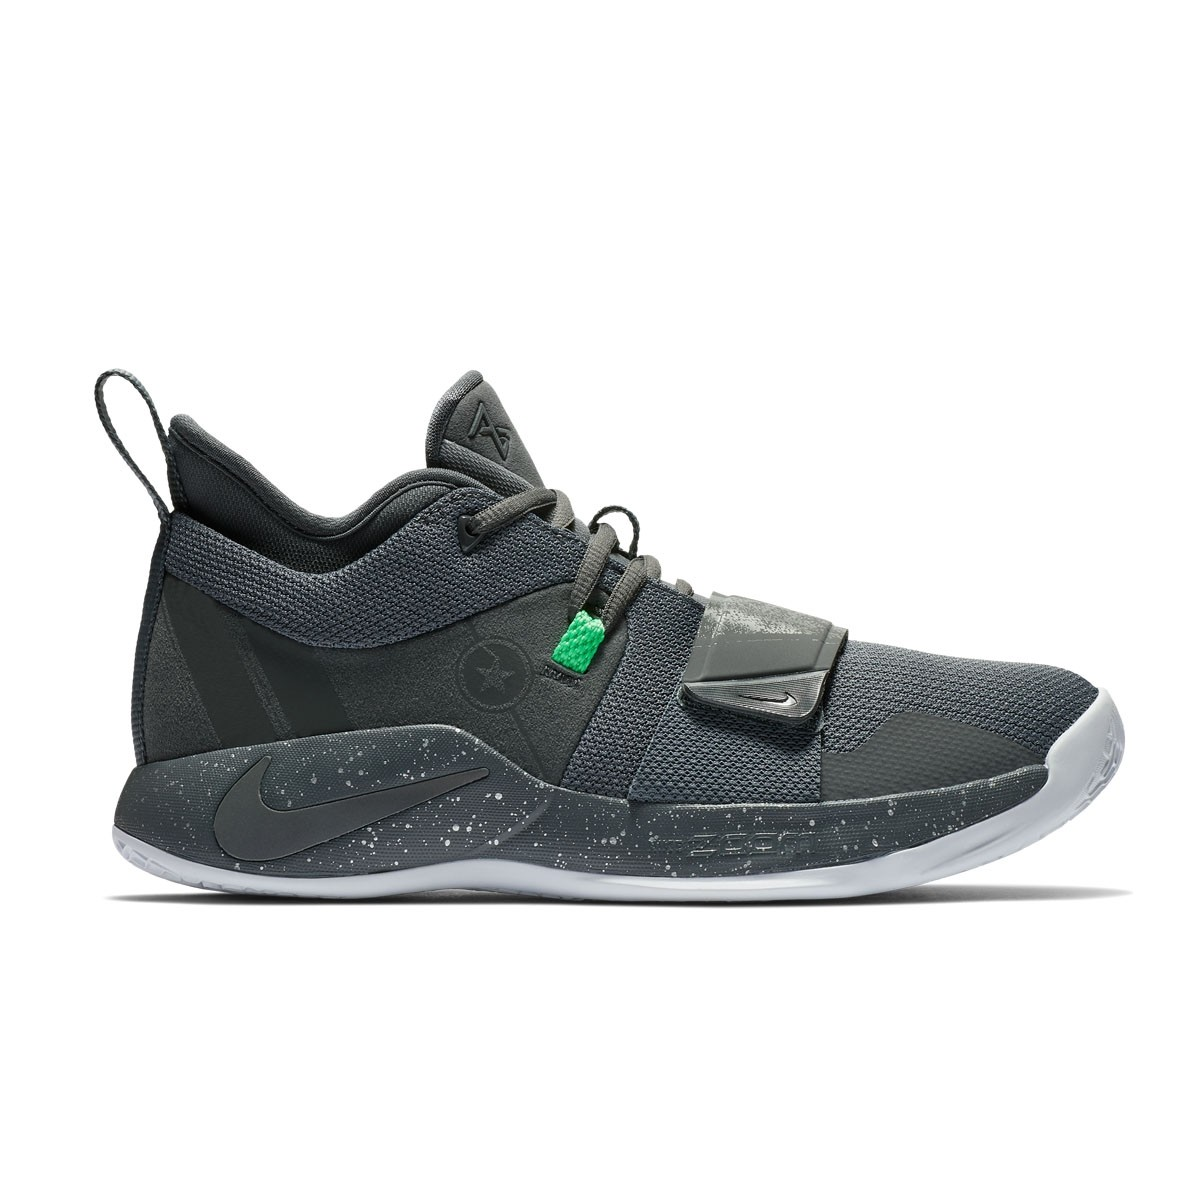 e7de08cc8 Buy Nike PG 2.5  Fighter Jet  Basketball shoes   sneakers